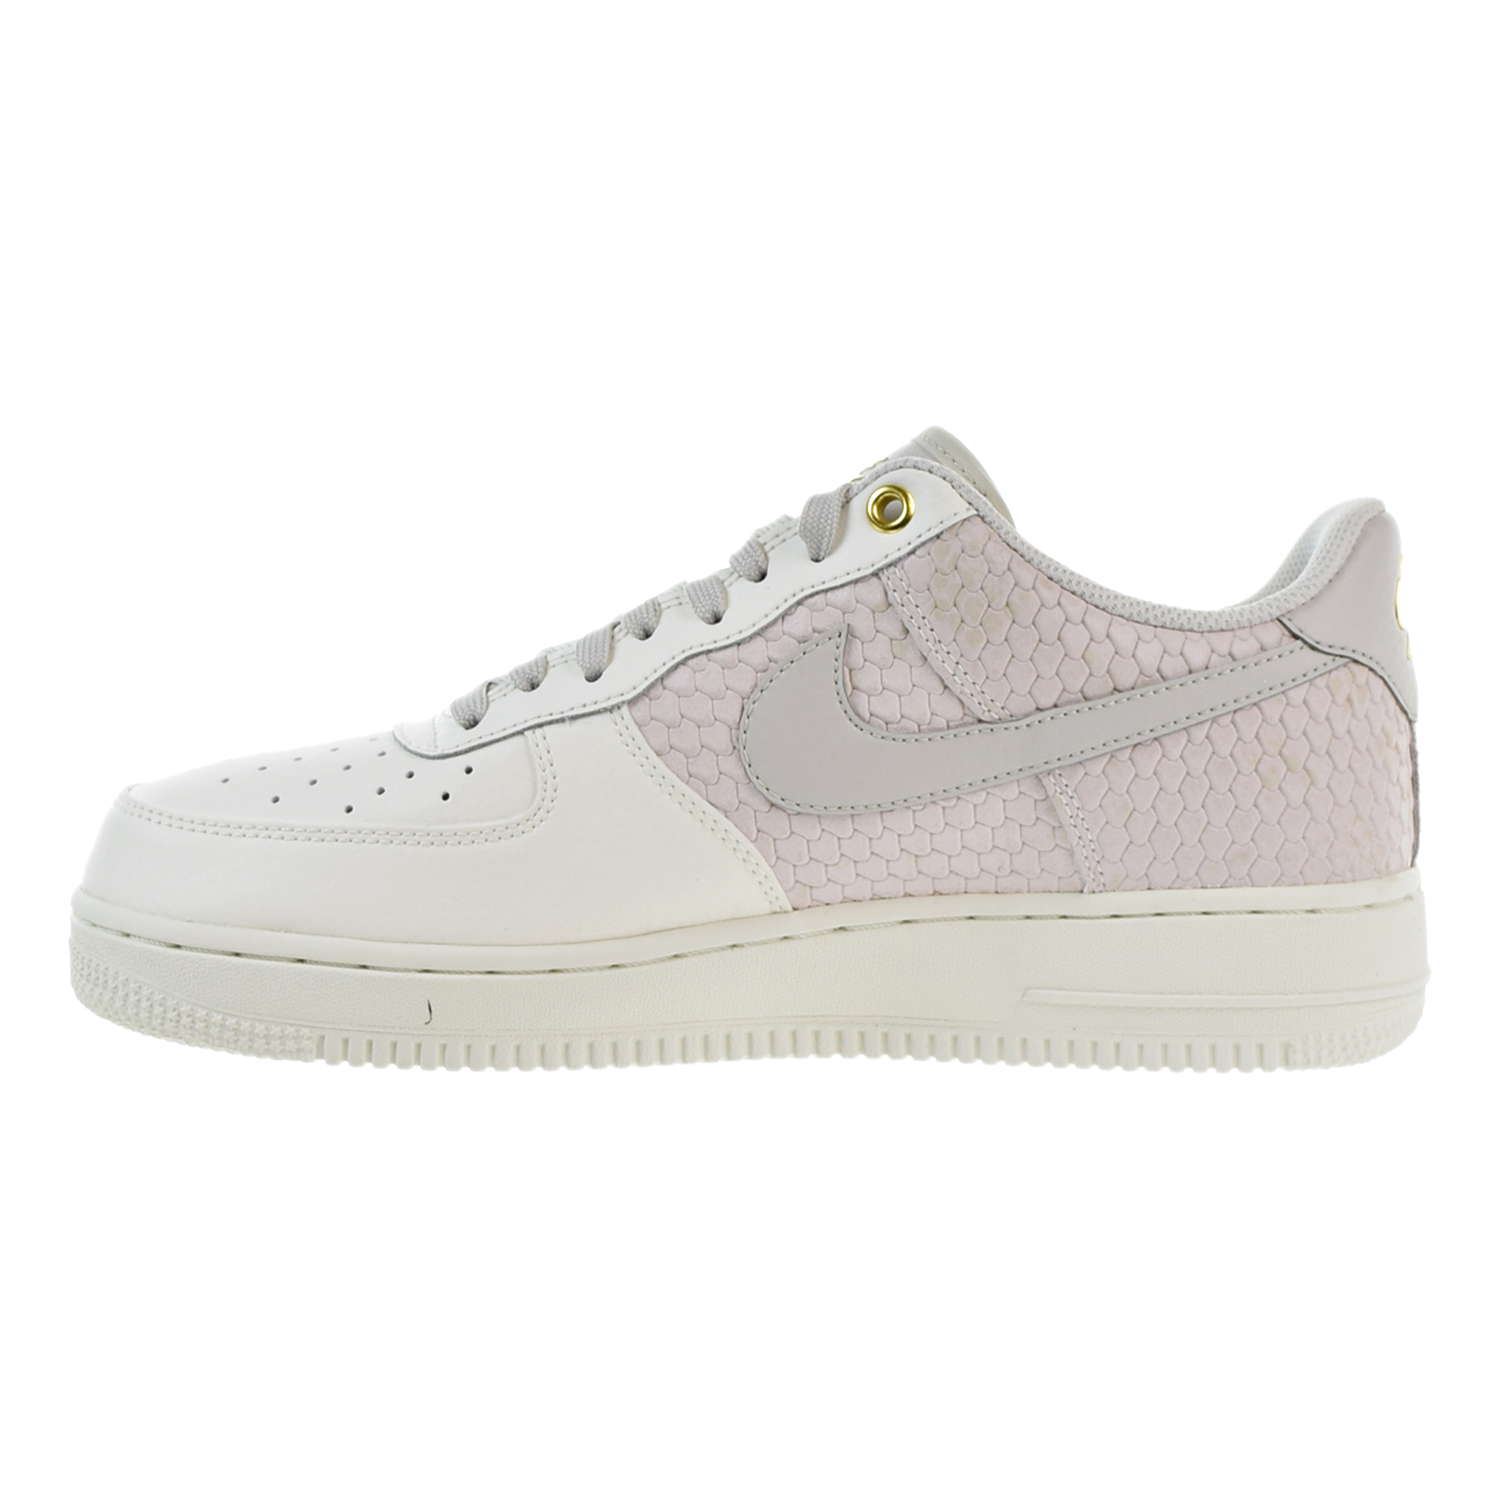 the latest 8864f 6c3b2 Nike Air Force 1 07 LV8 Men s Shoes Sail Light Bone Metallic Gold  823511-100 (10 D(M) US)